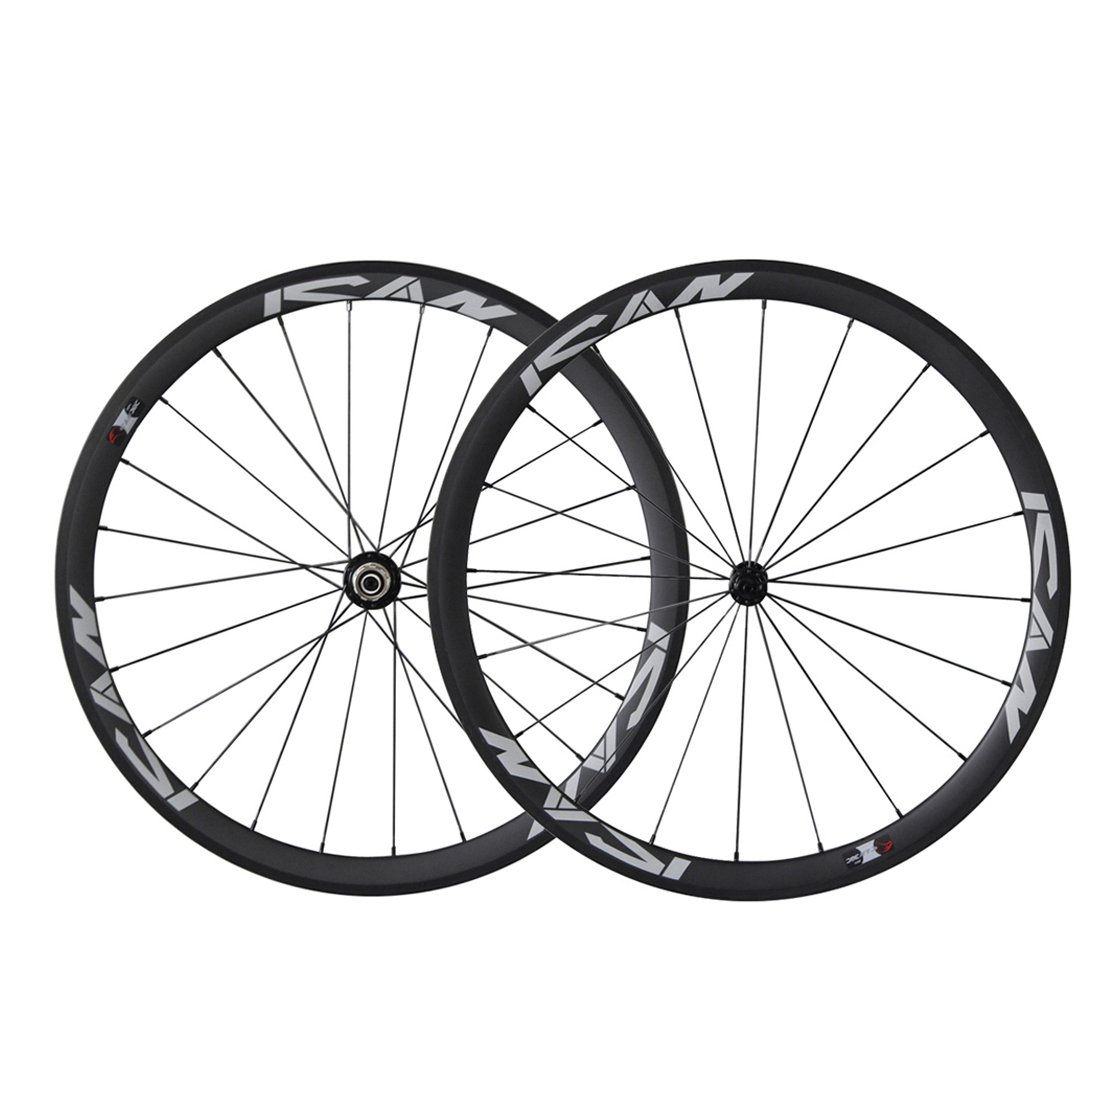 ICAN 700C Lightweight Road Bike Carbon Wheelset Clincher 38mm Basalt Brake Surface Rim Shimano or Sram 10/11 Speed 1420g (Classic Wheelset)